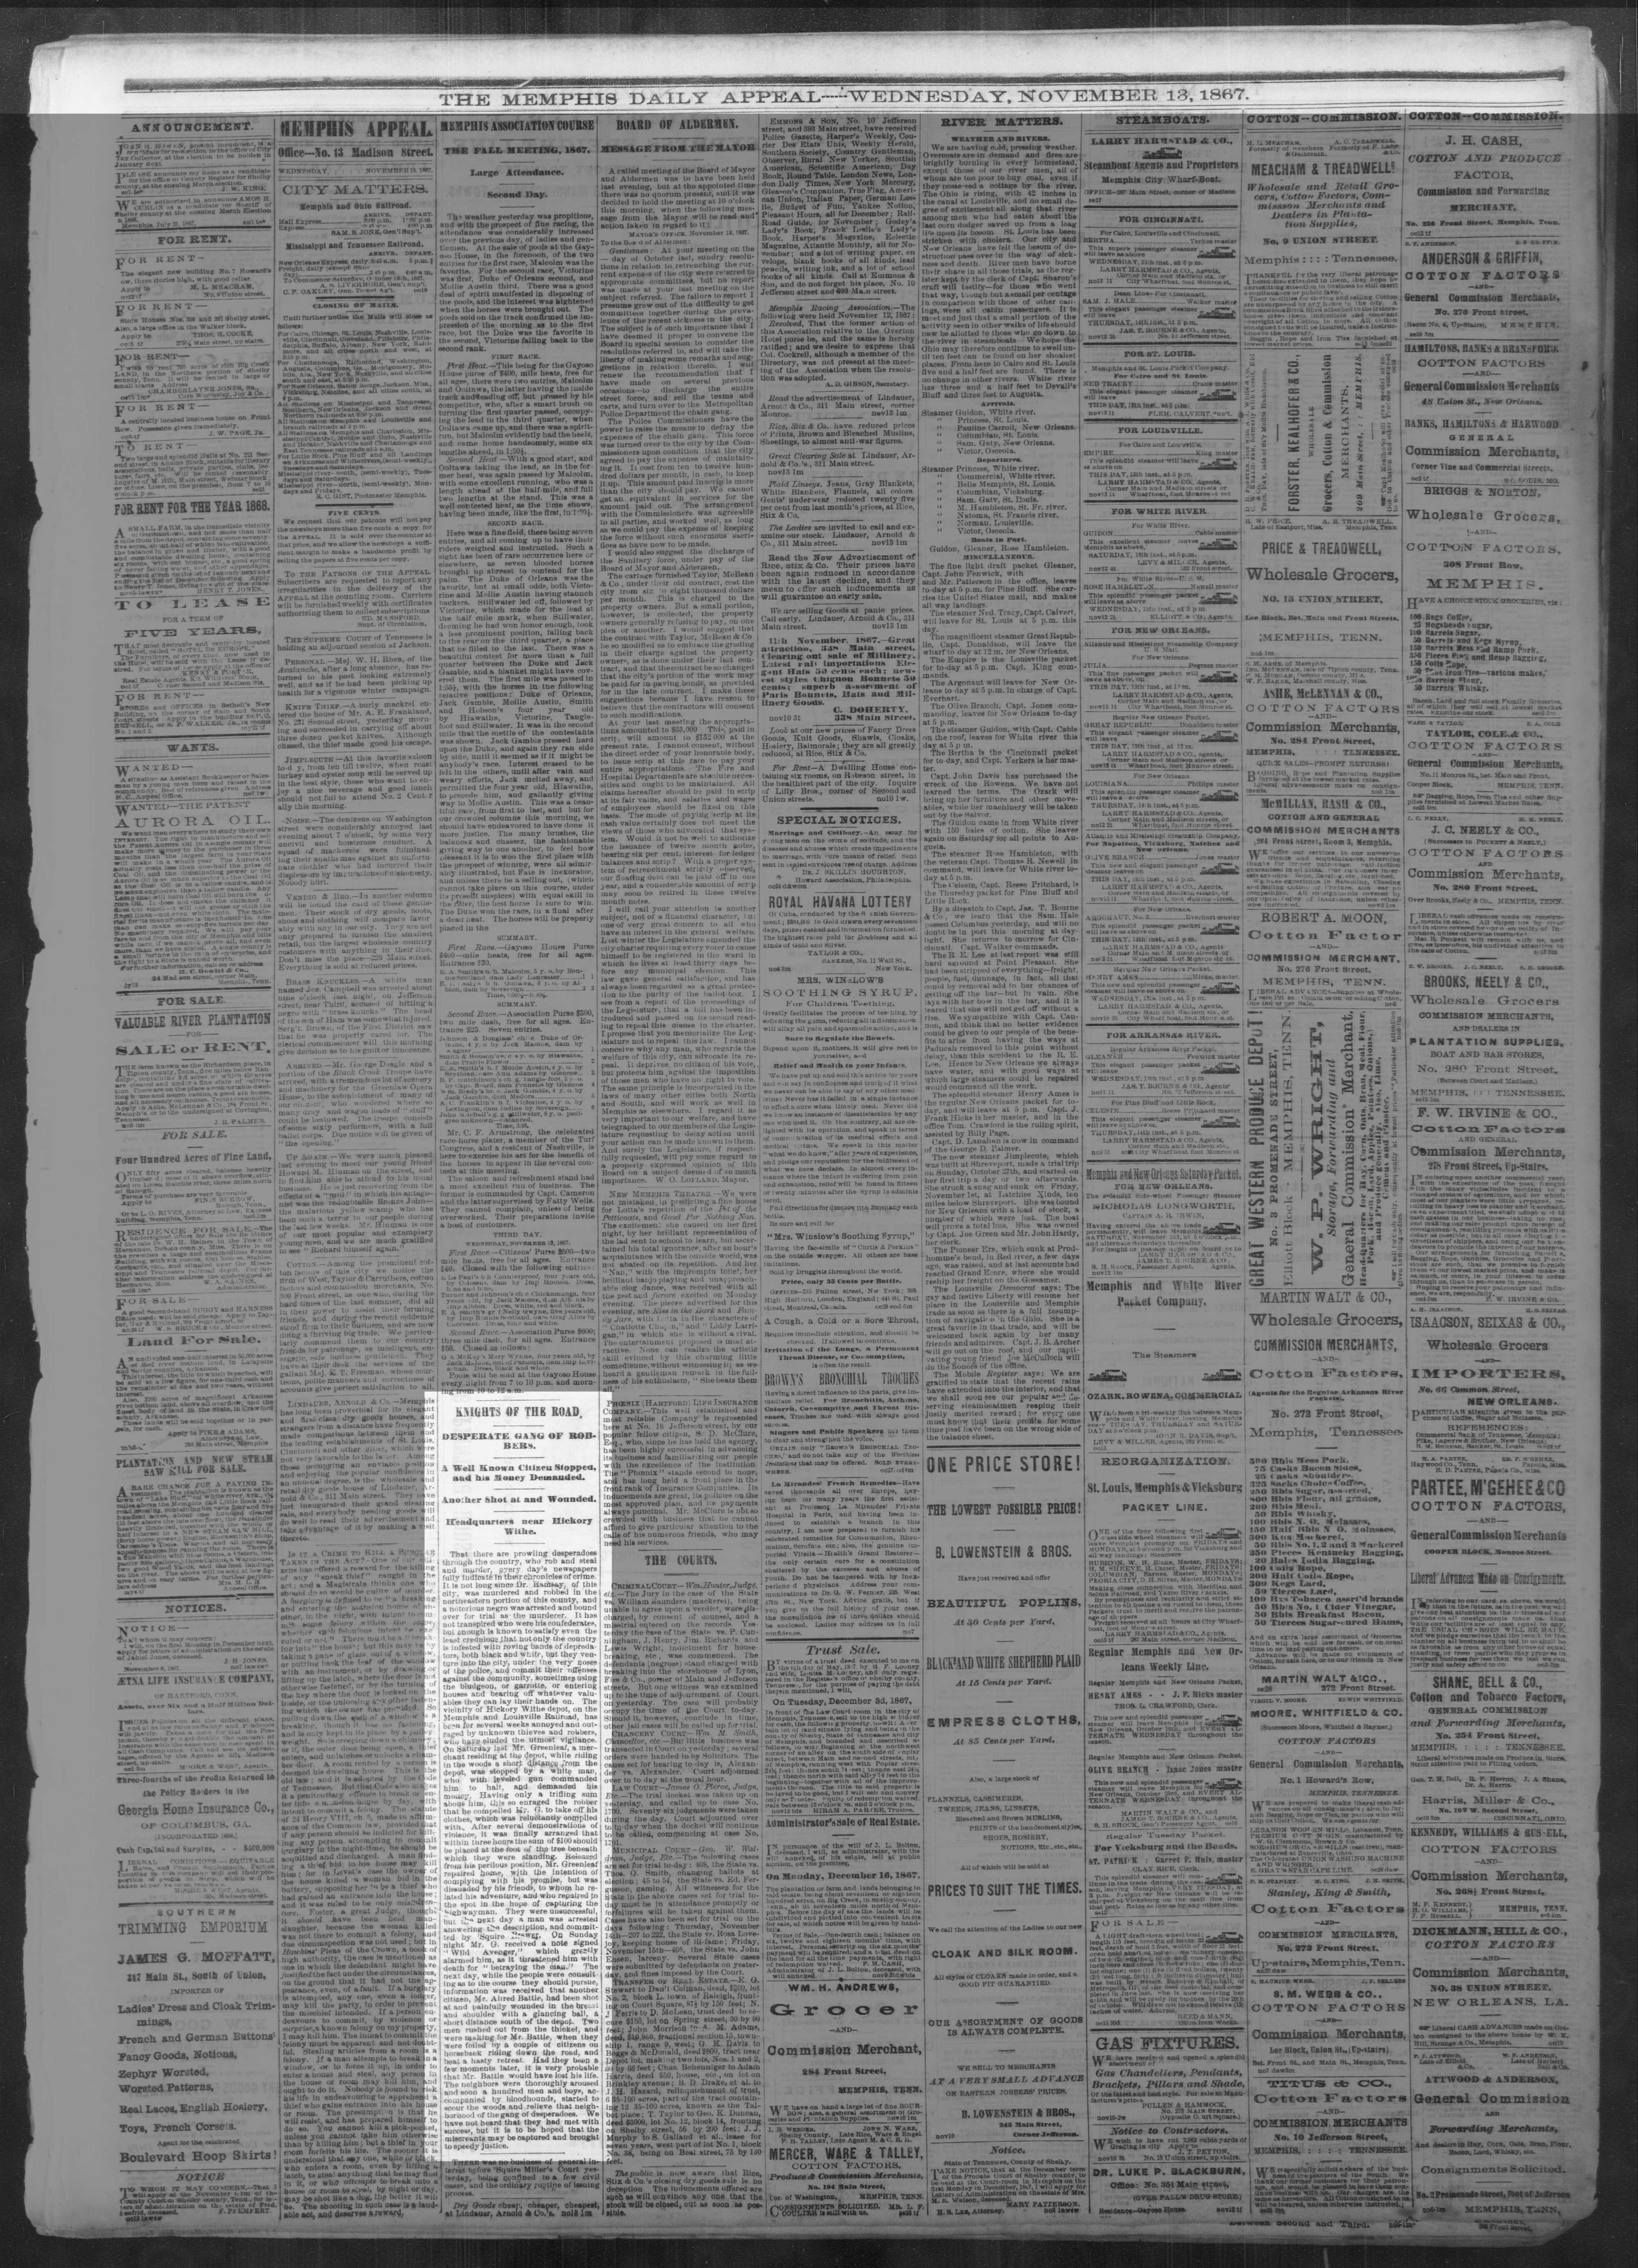 Memphis Daily Appeal, 11/13/1867